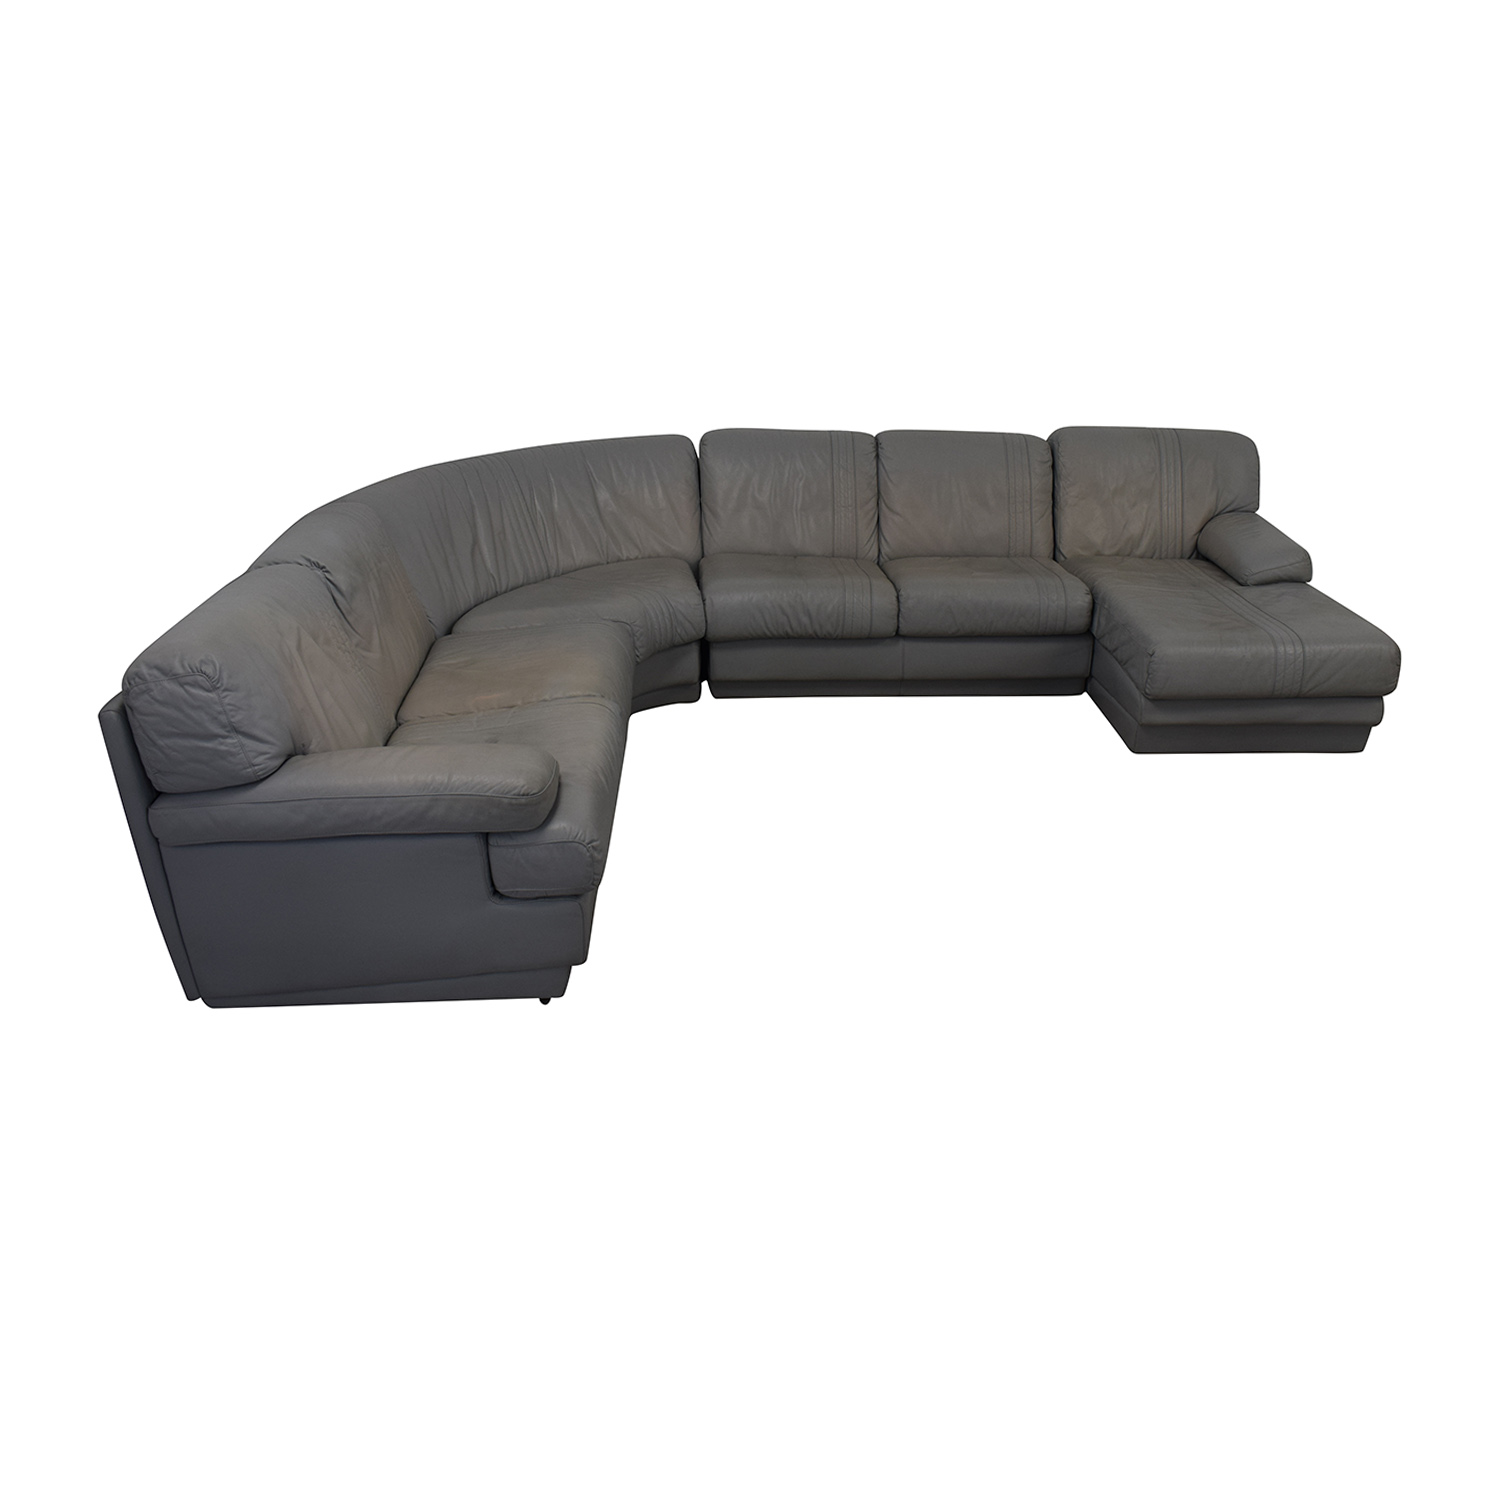 buy House of Grossman Grey L-Shaped Chaise Sectional House of Grossman